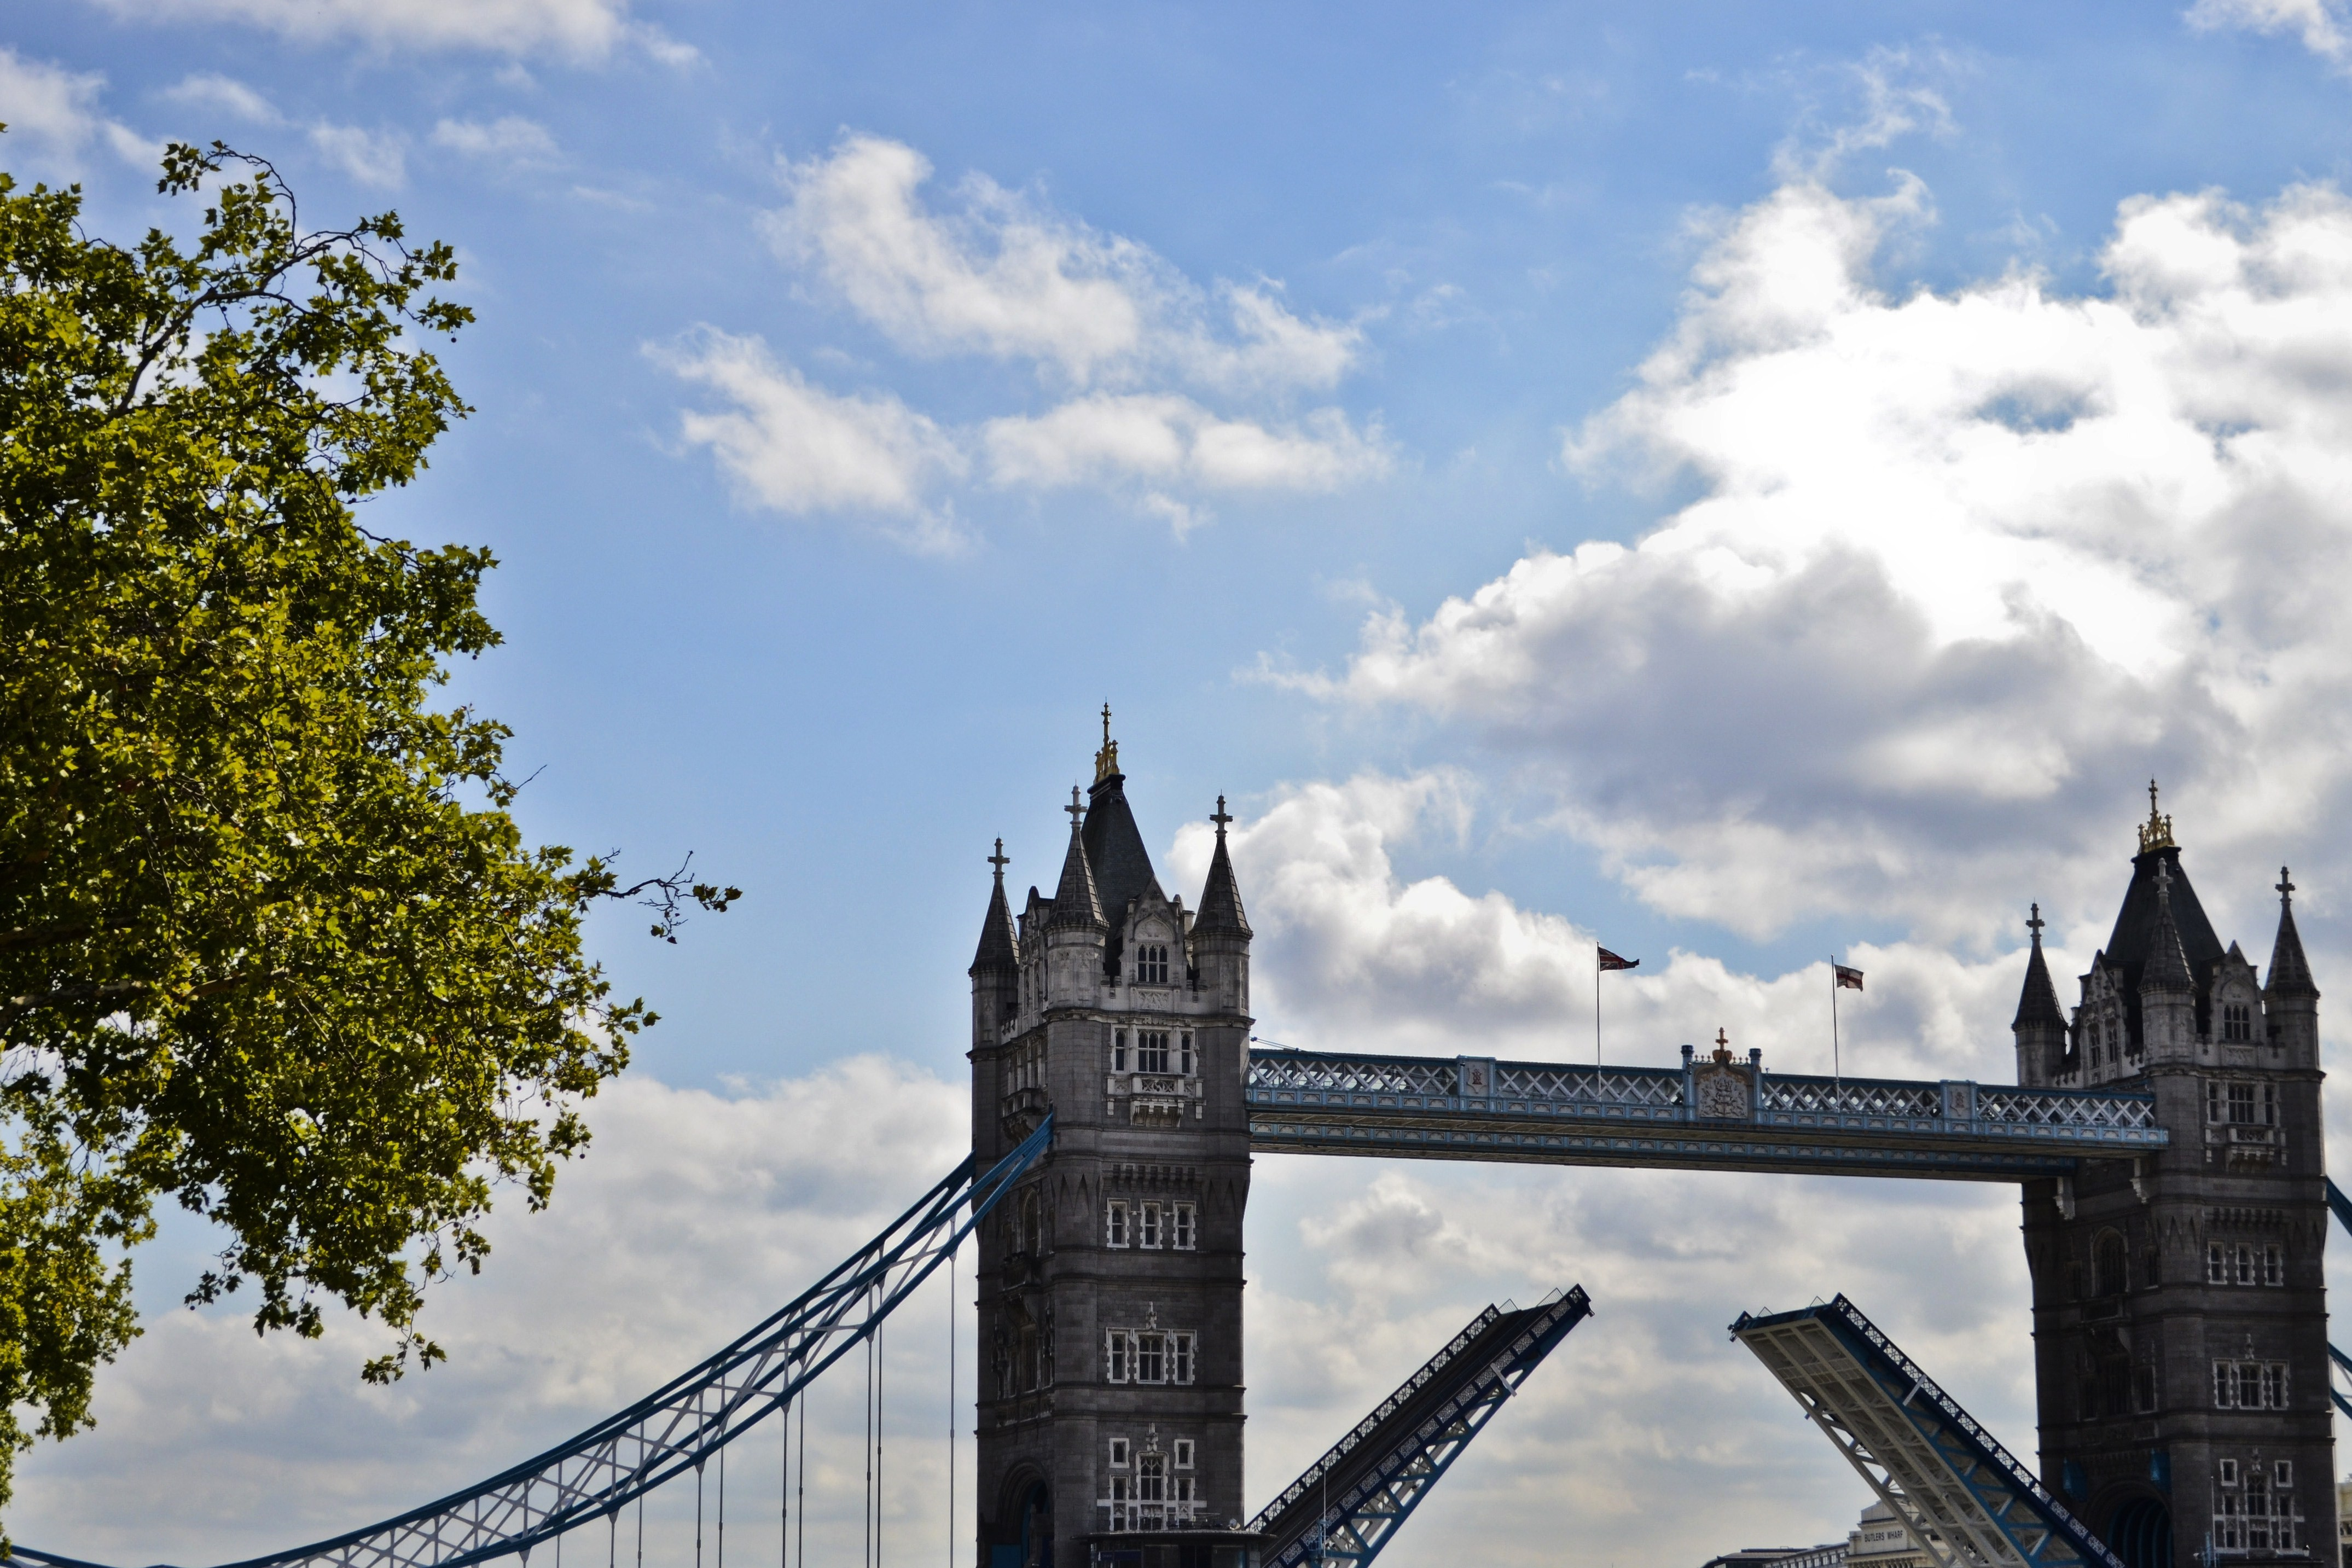 architecture London Bridges Tower HD Wallpaper